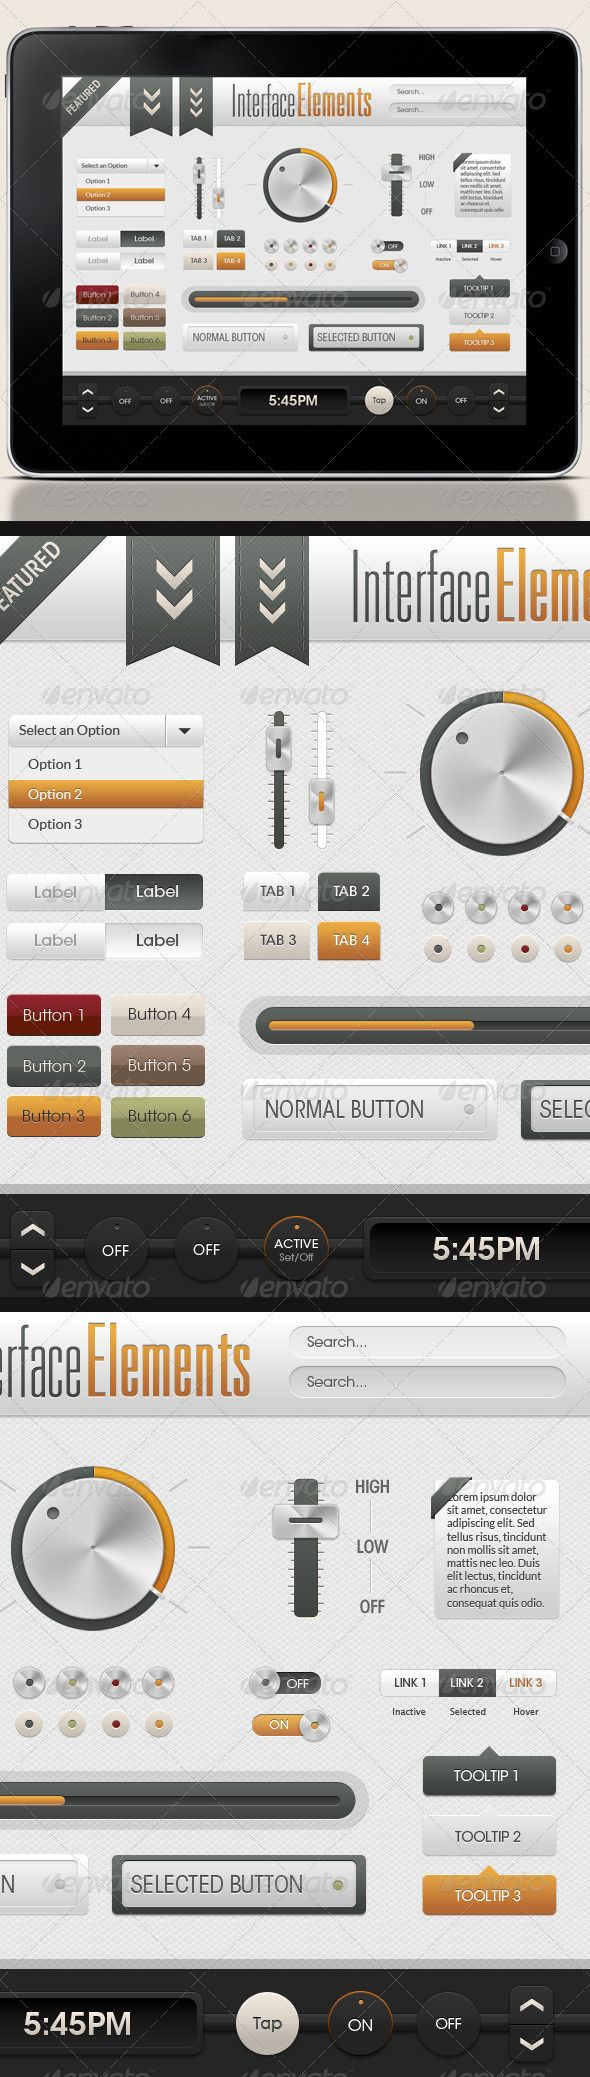 A wonderful assortment of UI elements that can be used anywhere. This specialty package includes everything from sliders to big sh